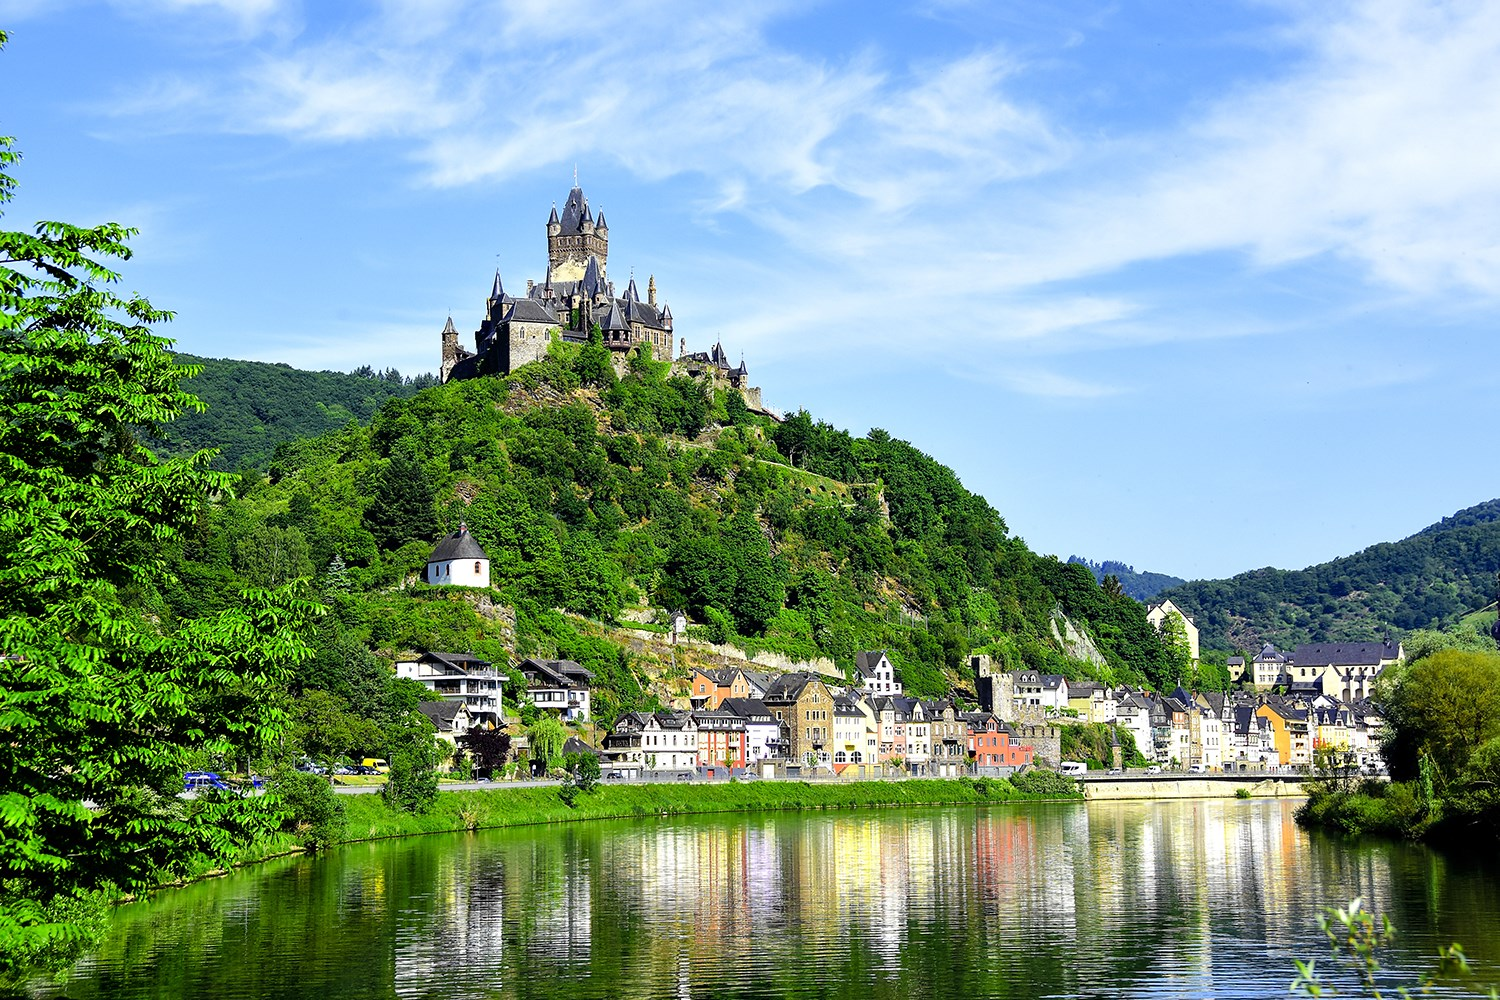 Europe's Rivers and Castles - 7-Night Cruise from Nuremberg to Luxembourg